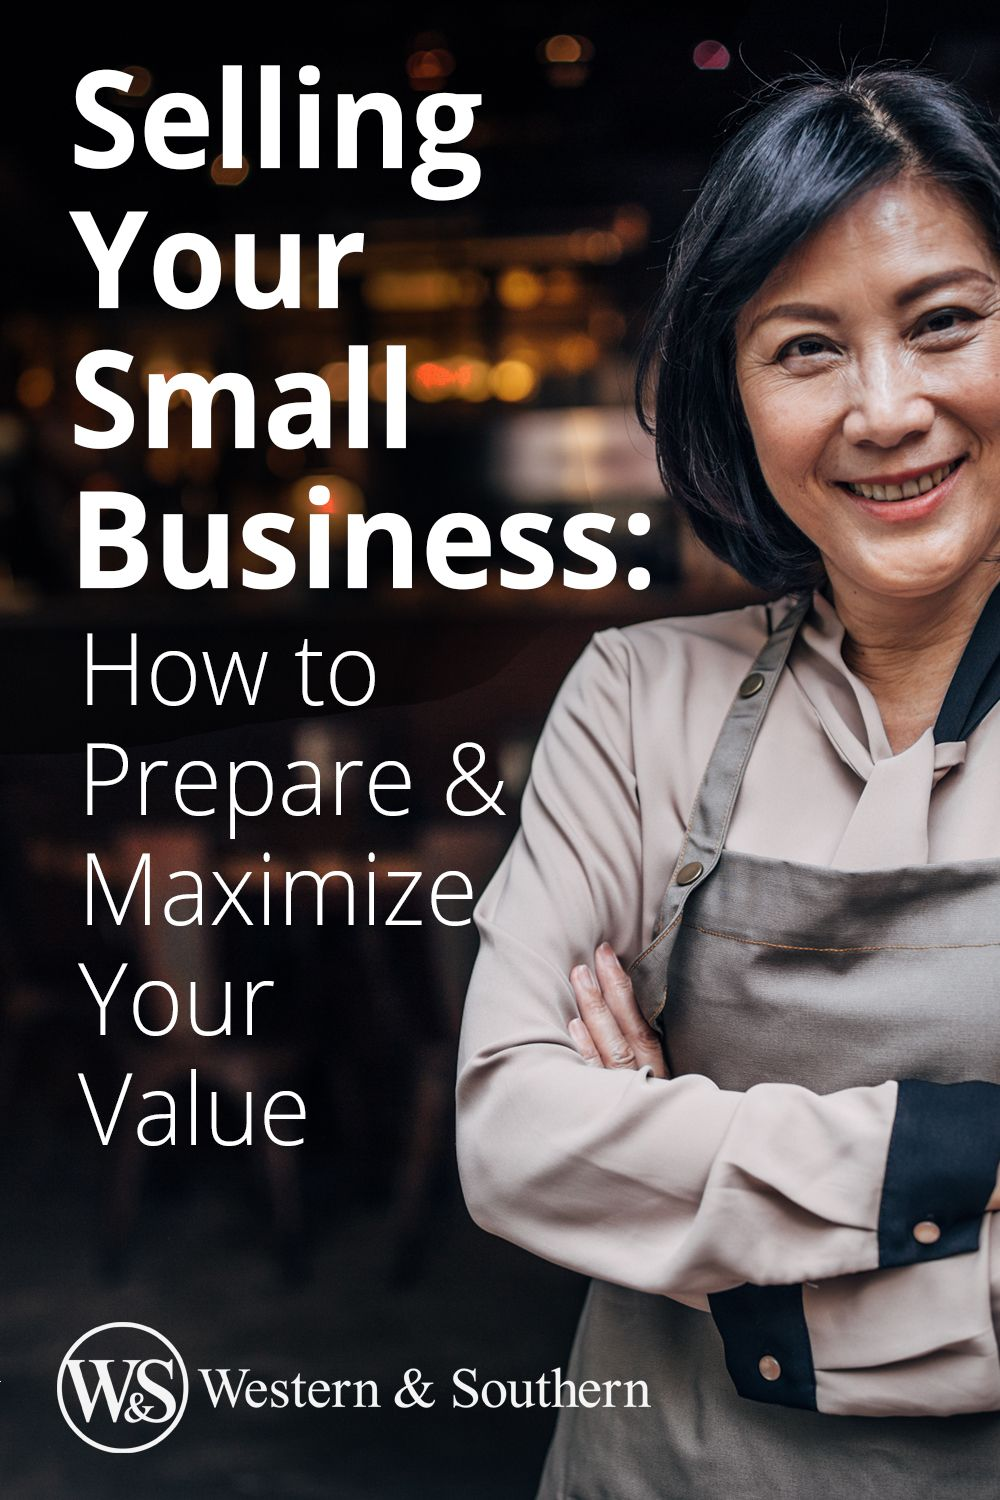 Selling Your Small Business How to Prepare & Maximize